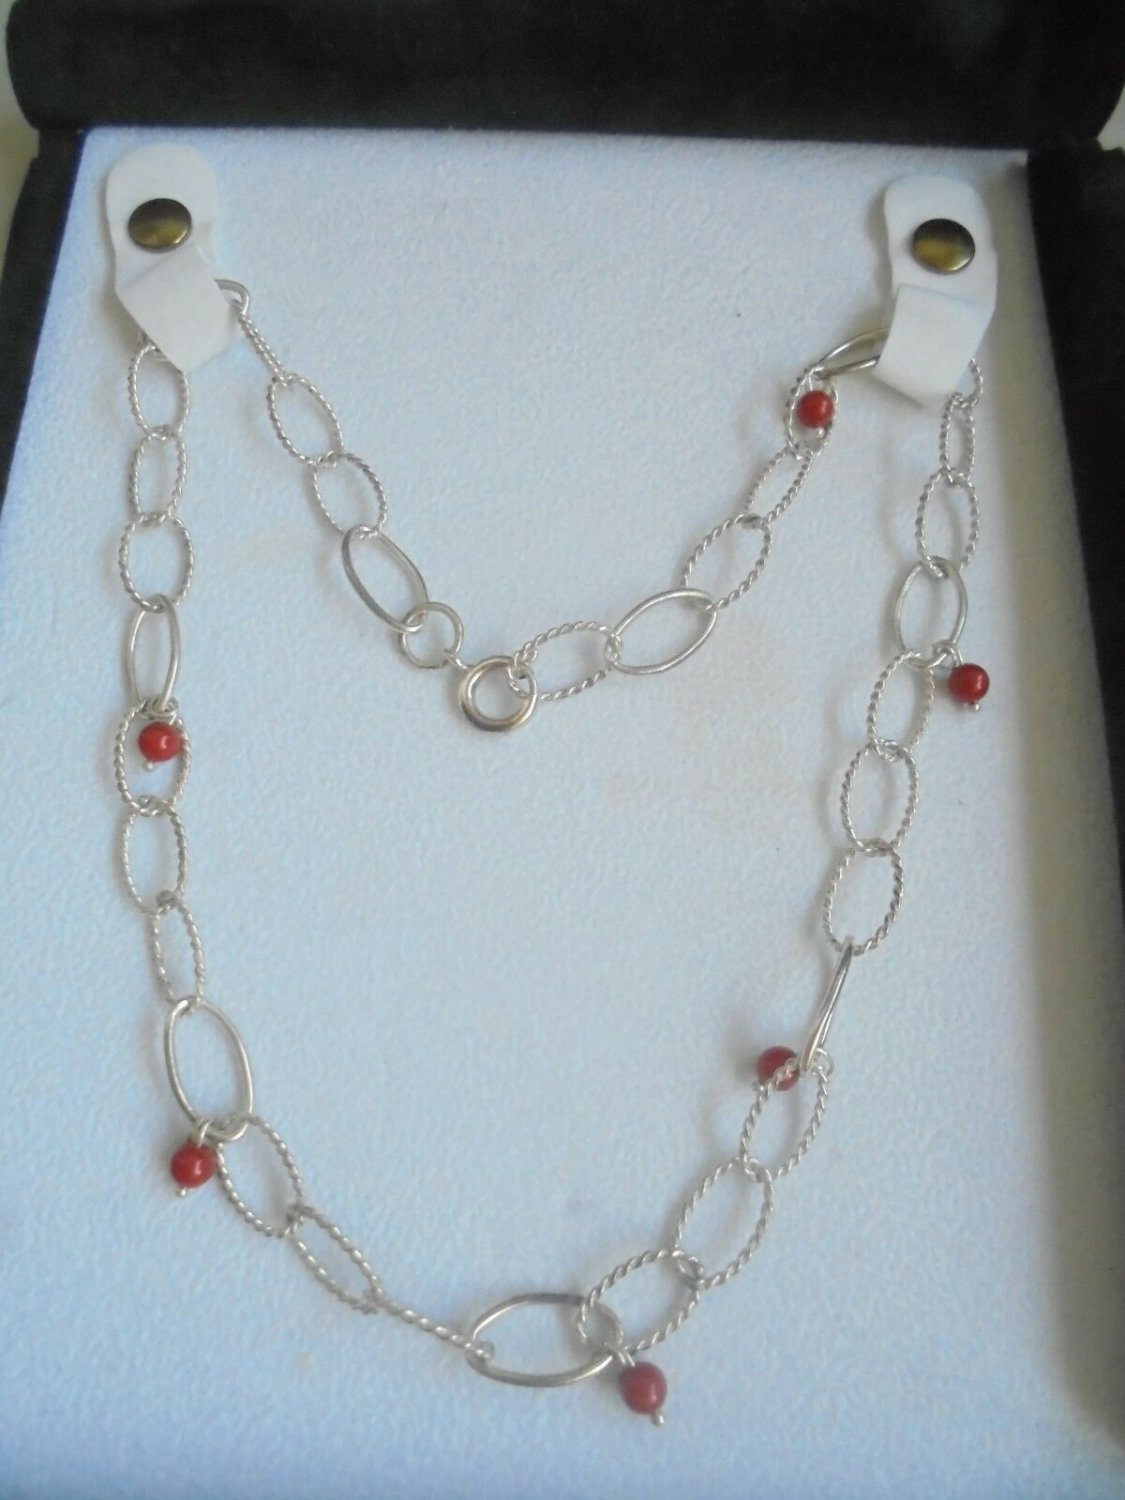 NECKLACE in SILVER sterling 925 and CORAL from the Mediterranean Original in gift box